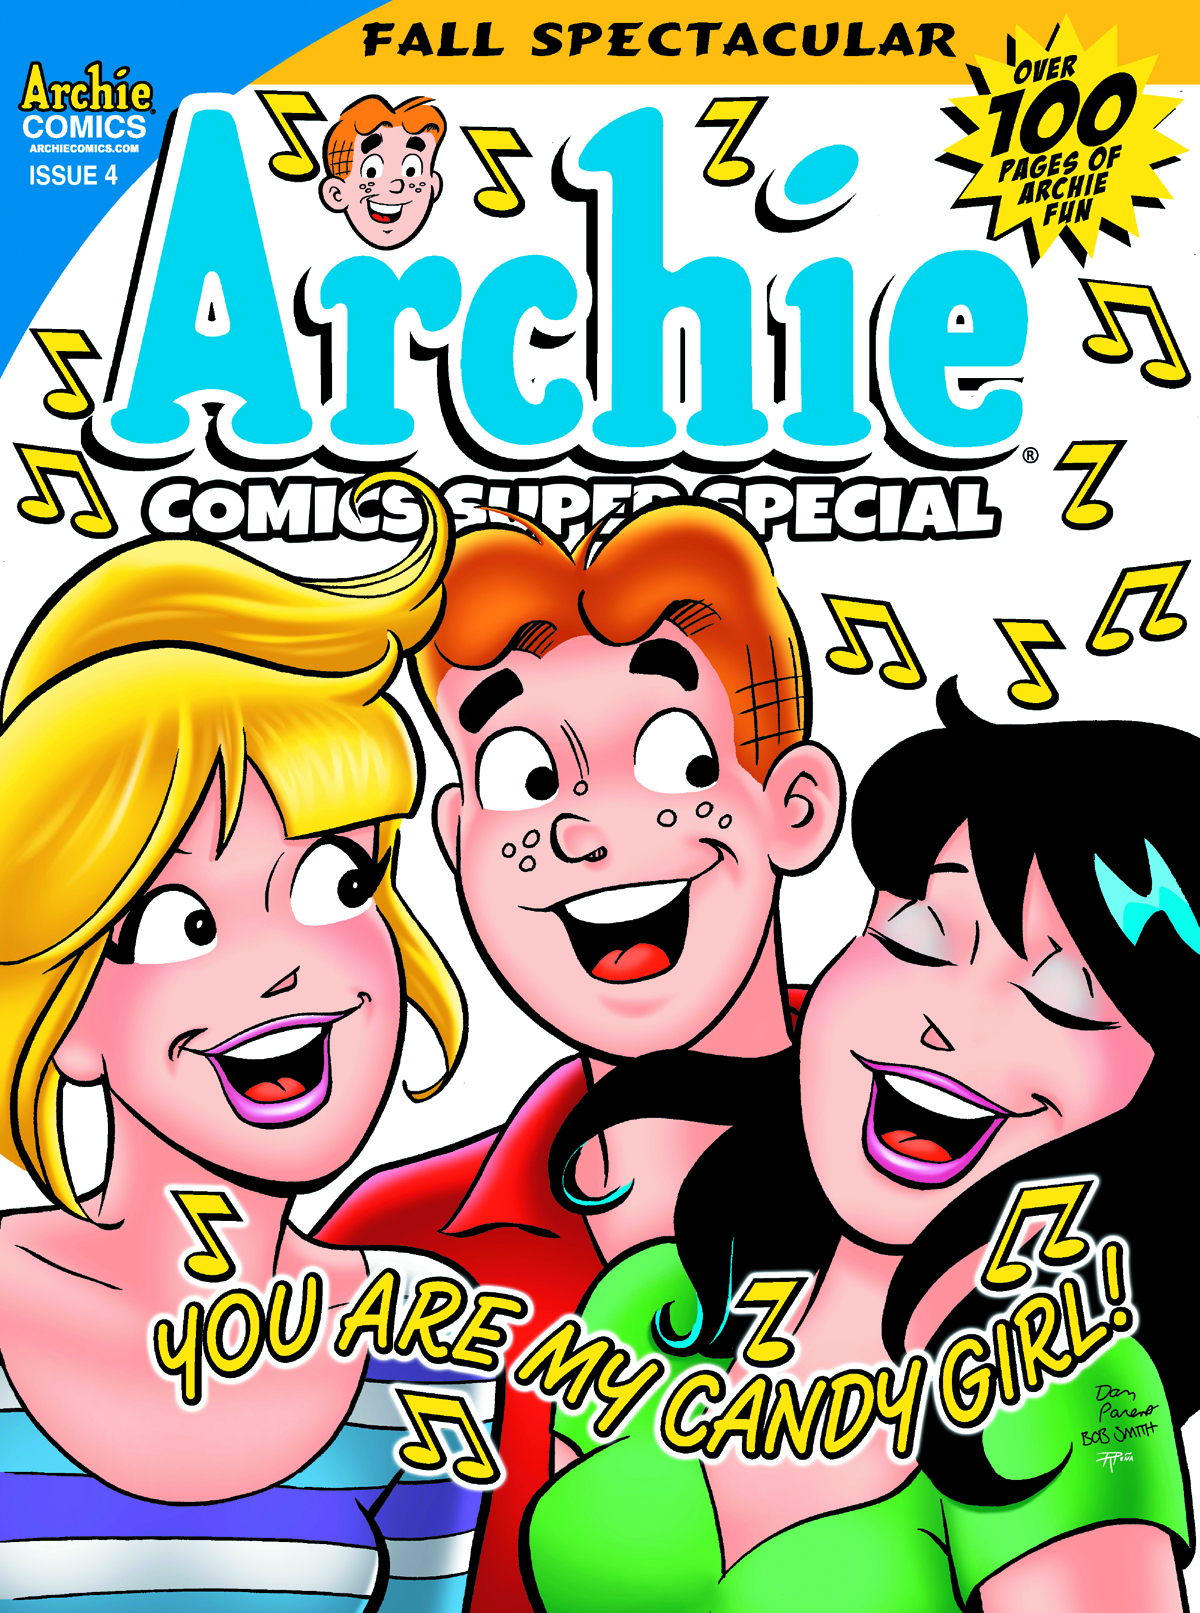 ARCHIE COMIC SUPER SPECIAL #4